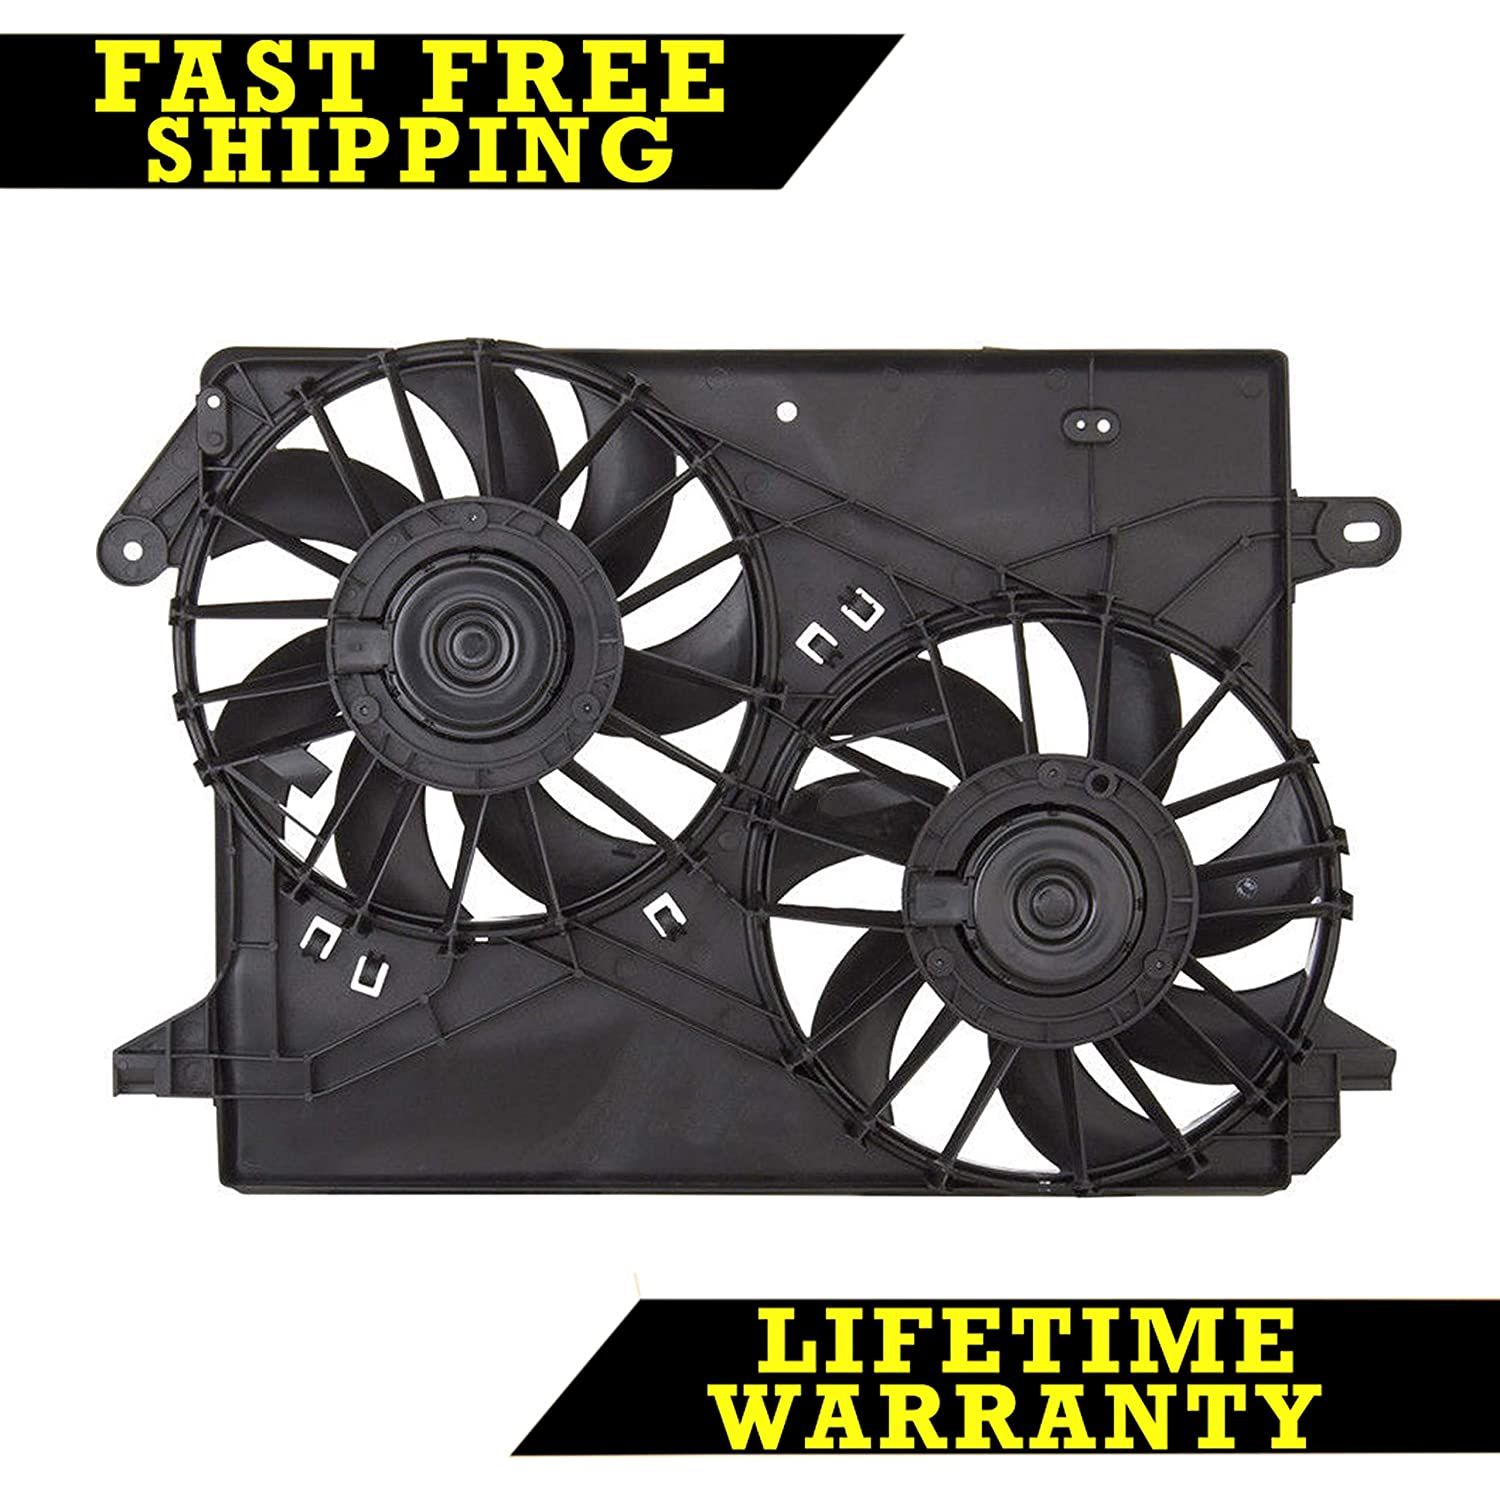 RADIATOR CONDENSER COOLING FAN FOR CHRY DODGE FITS CHARGER MAGNUM CH3115132 Sunbelt Radiators